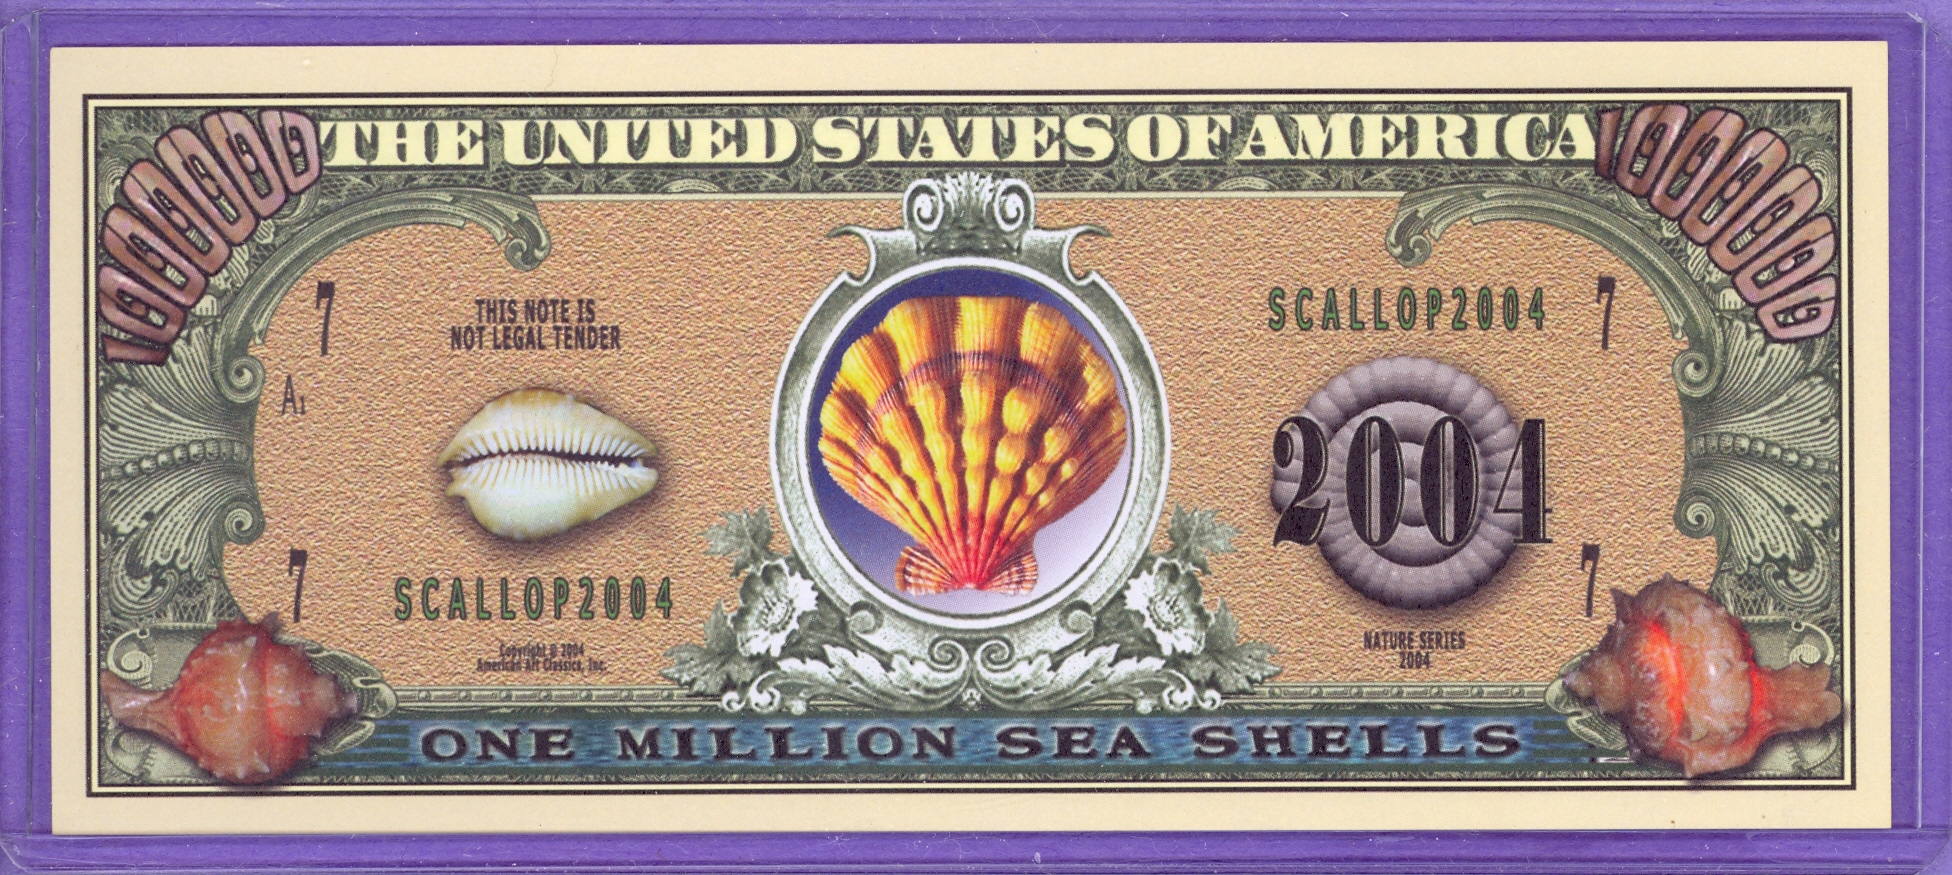 Sea Shells $1,000,000 Novelty Note